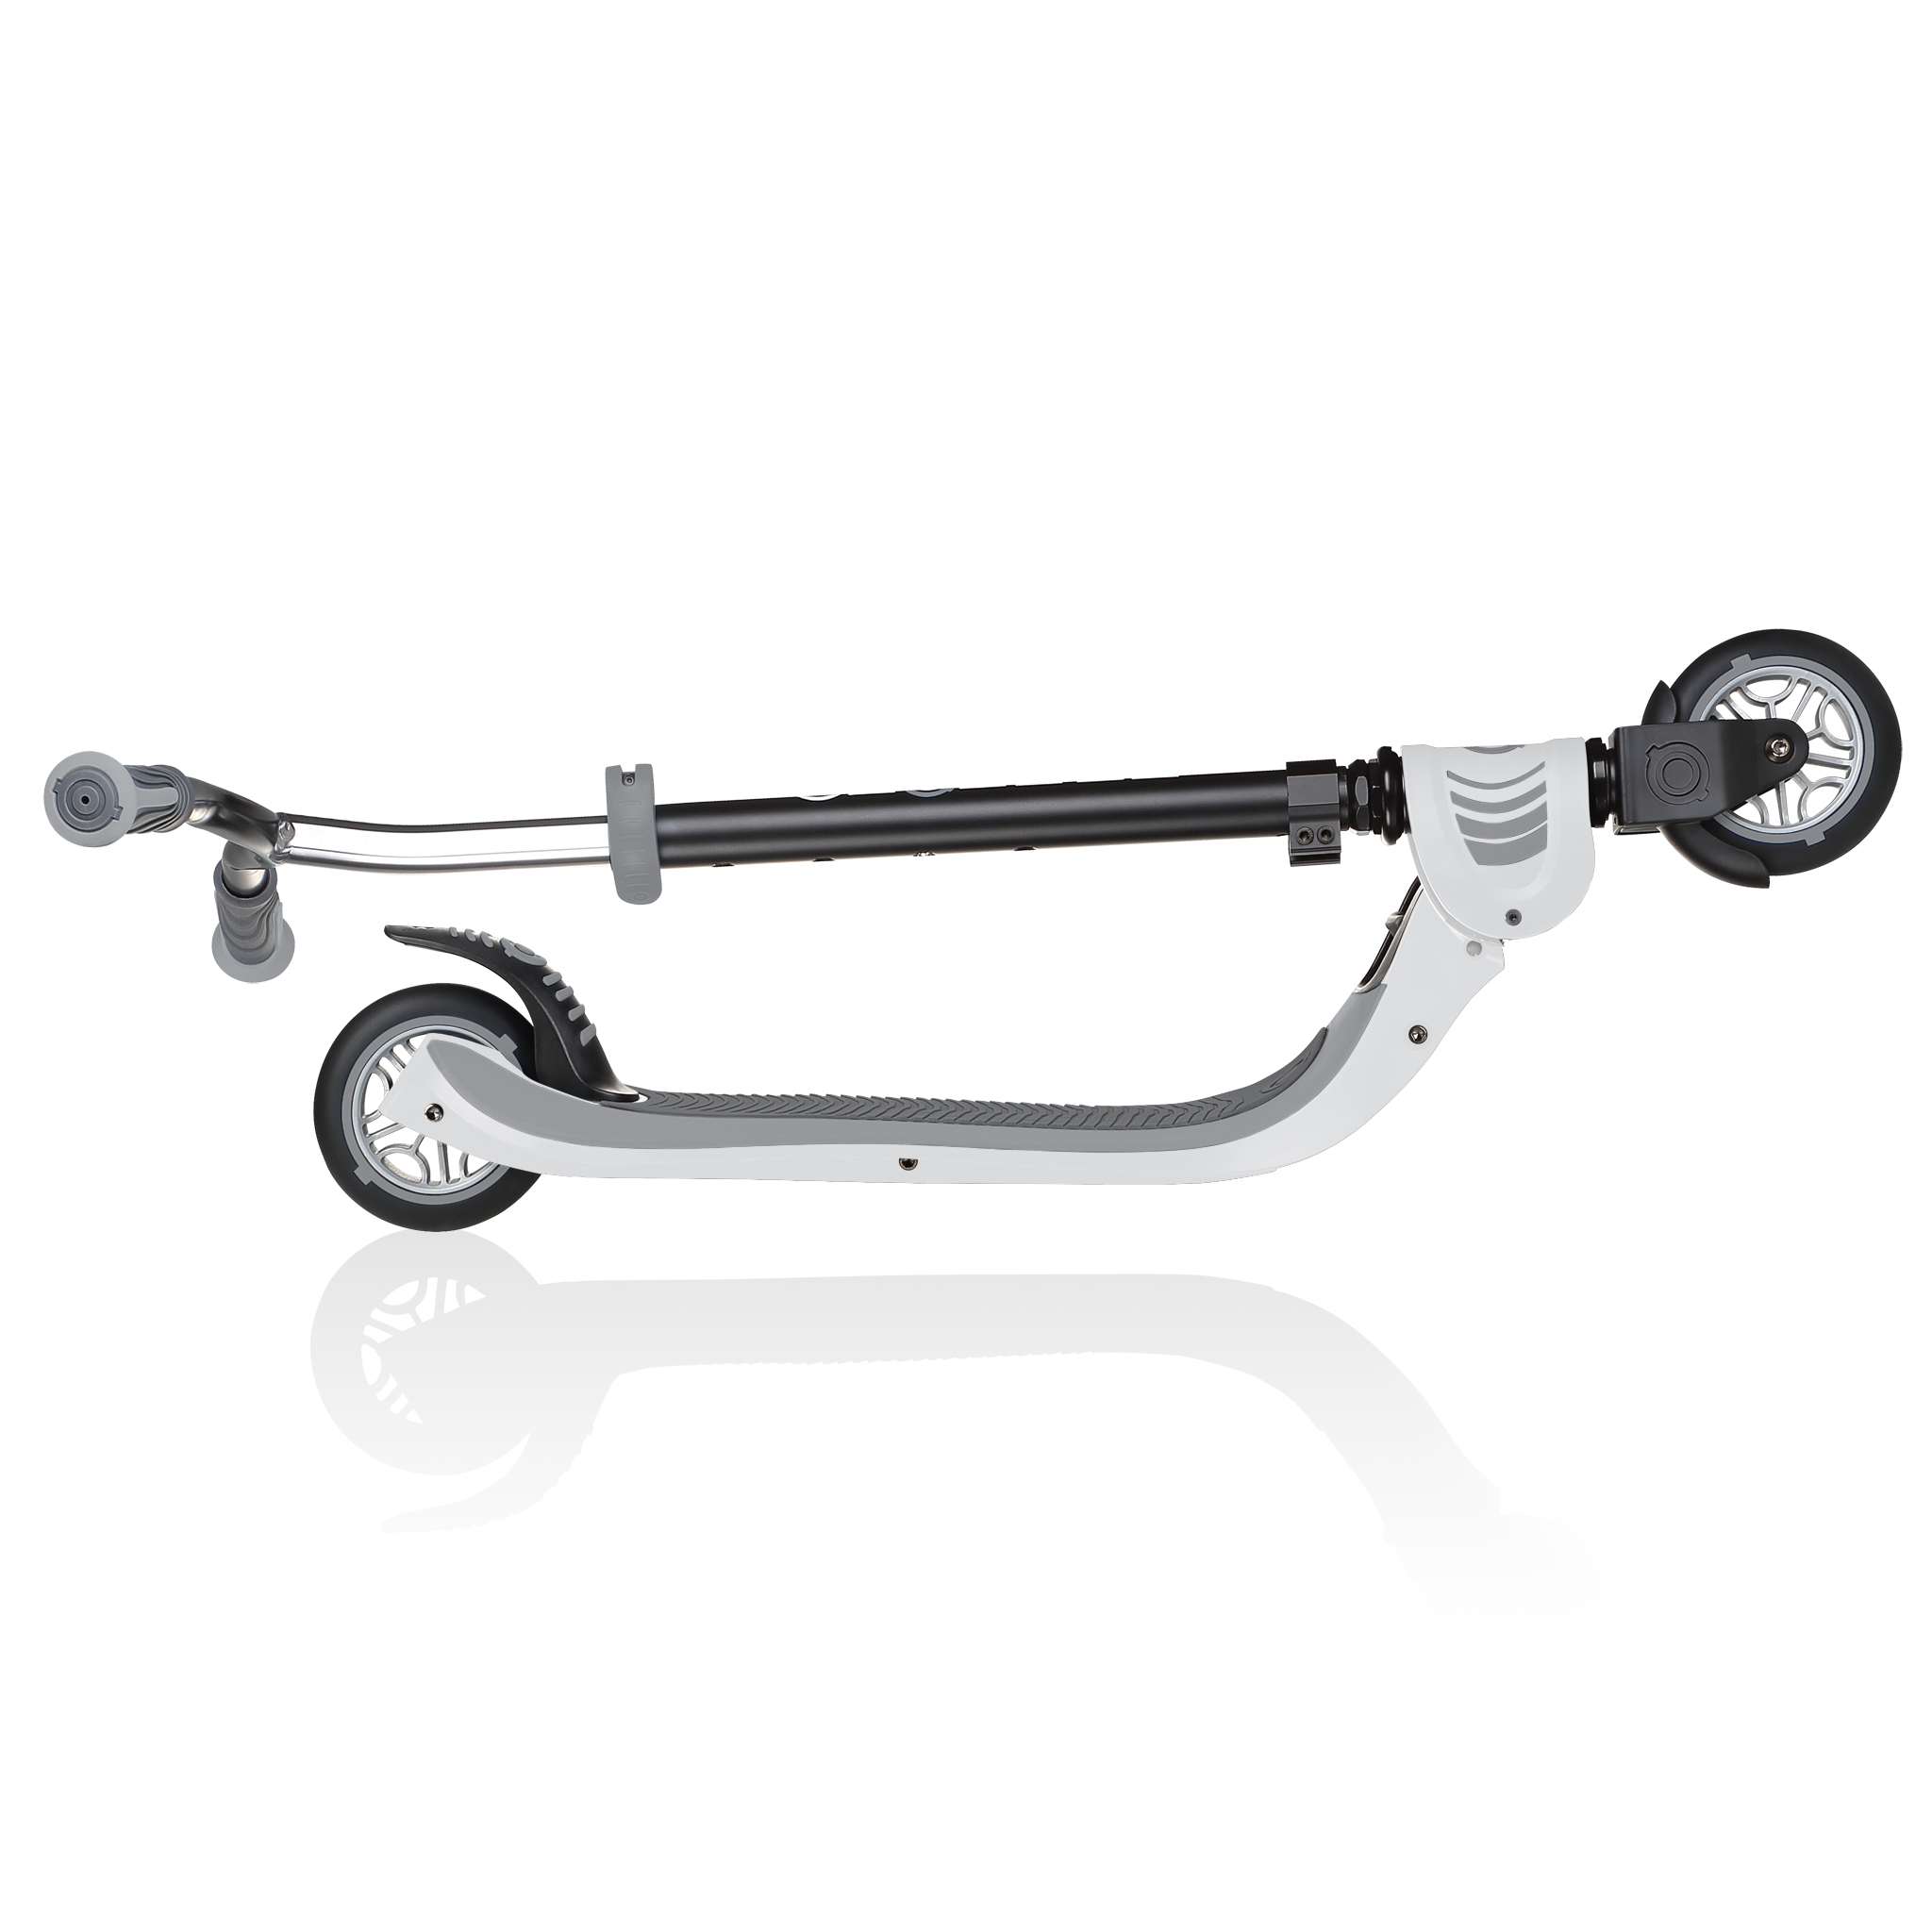 FLOW-FOLDABLE-125-2-wheel-foldable-scooter-for-kids-white 3